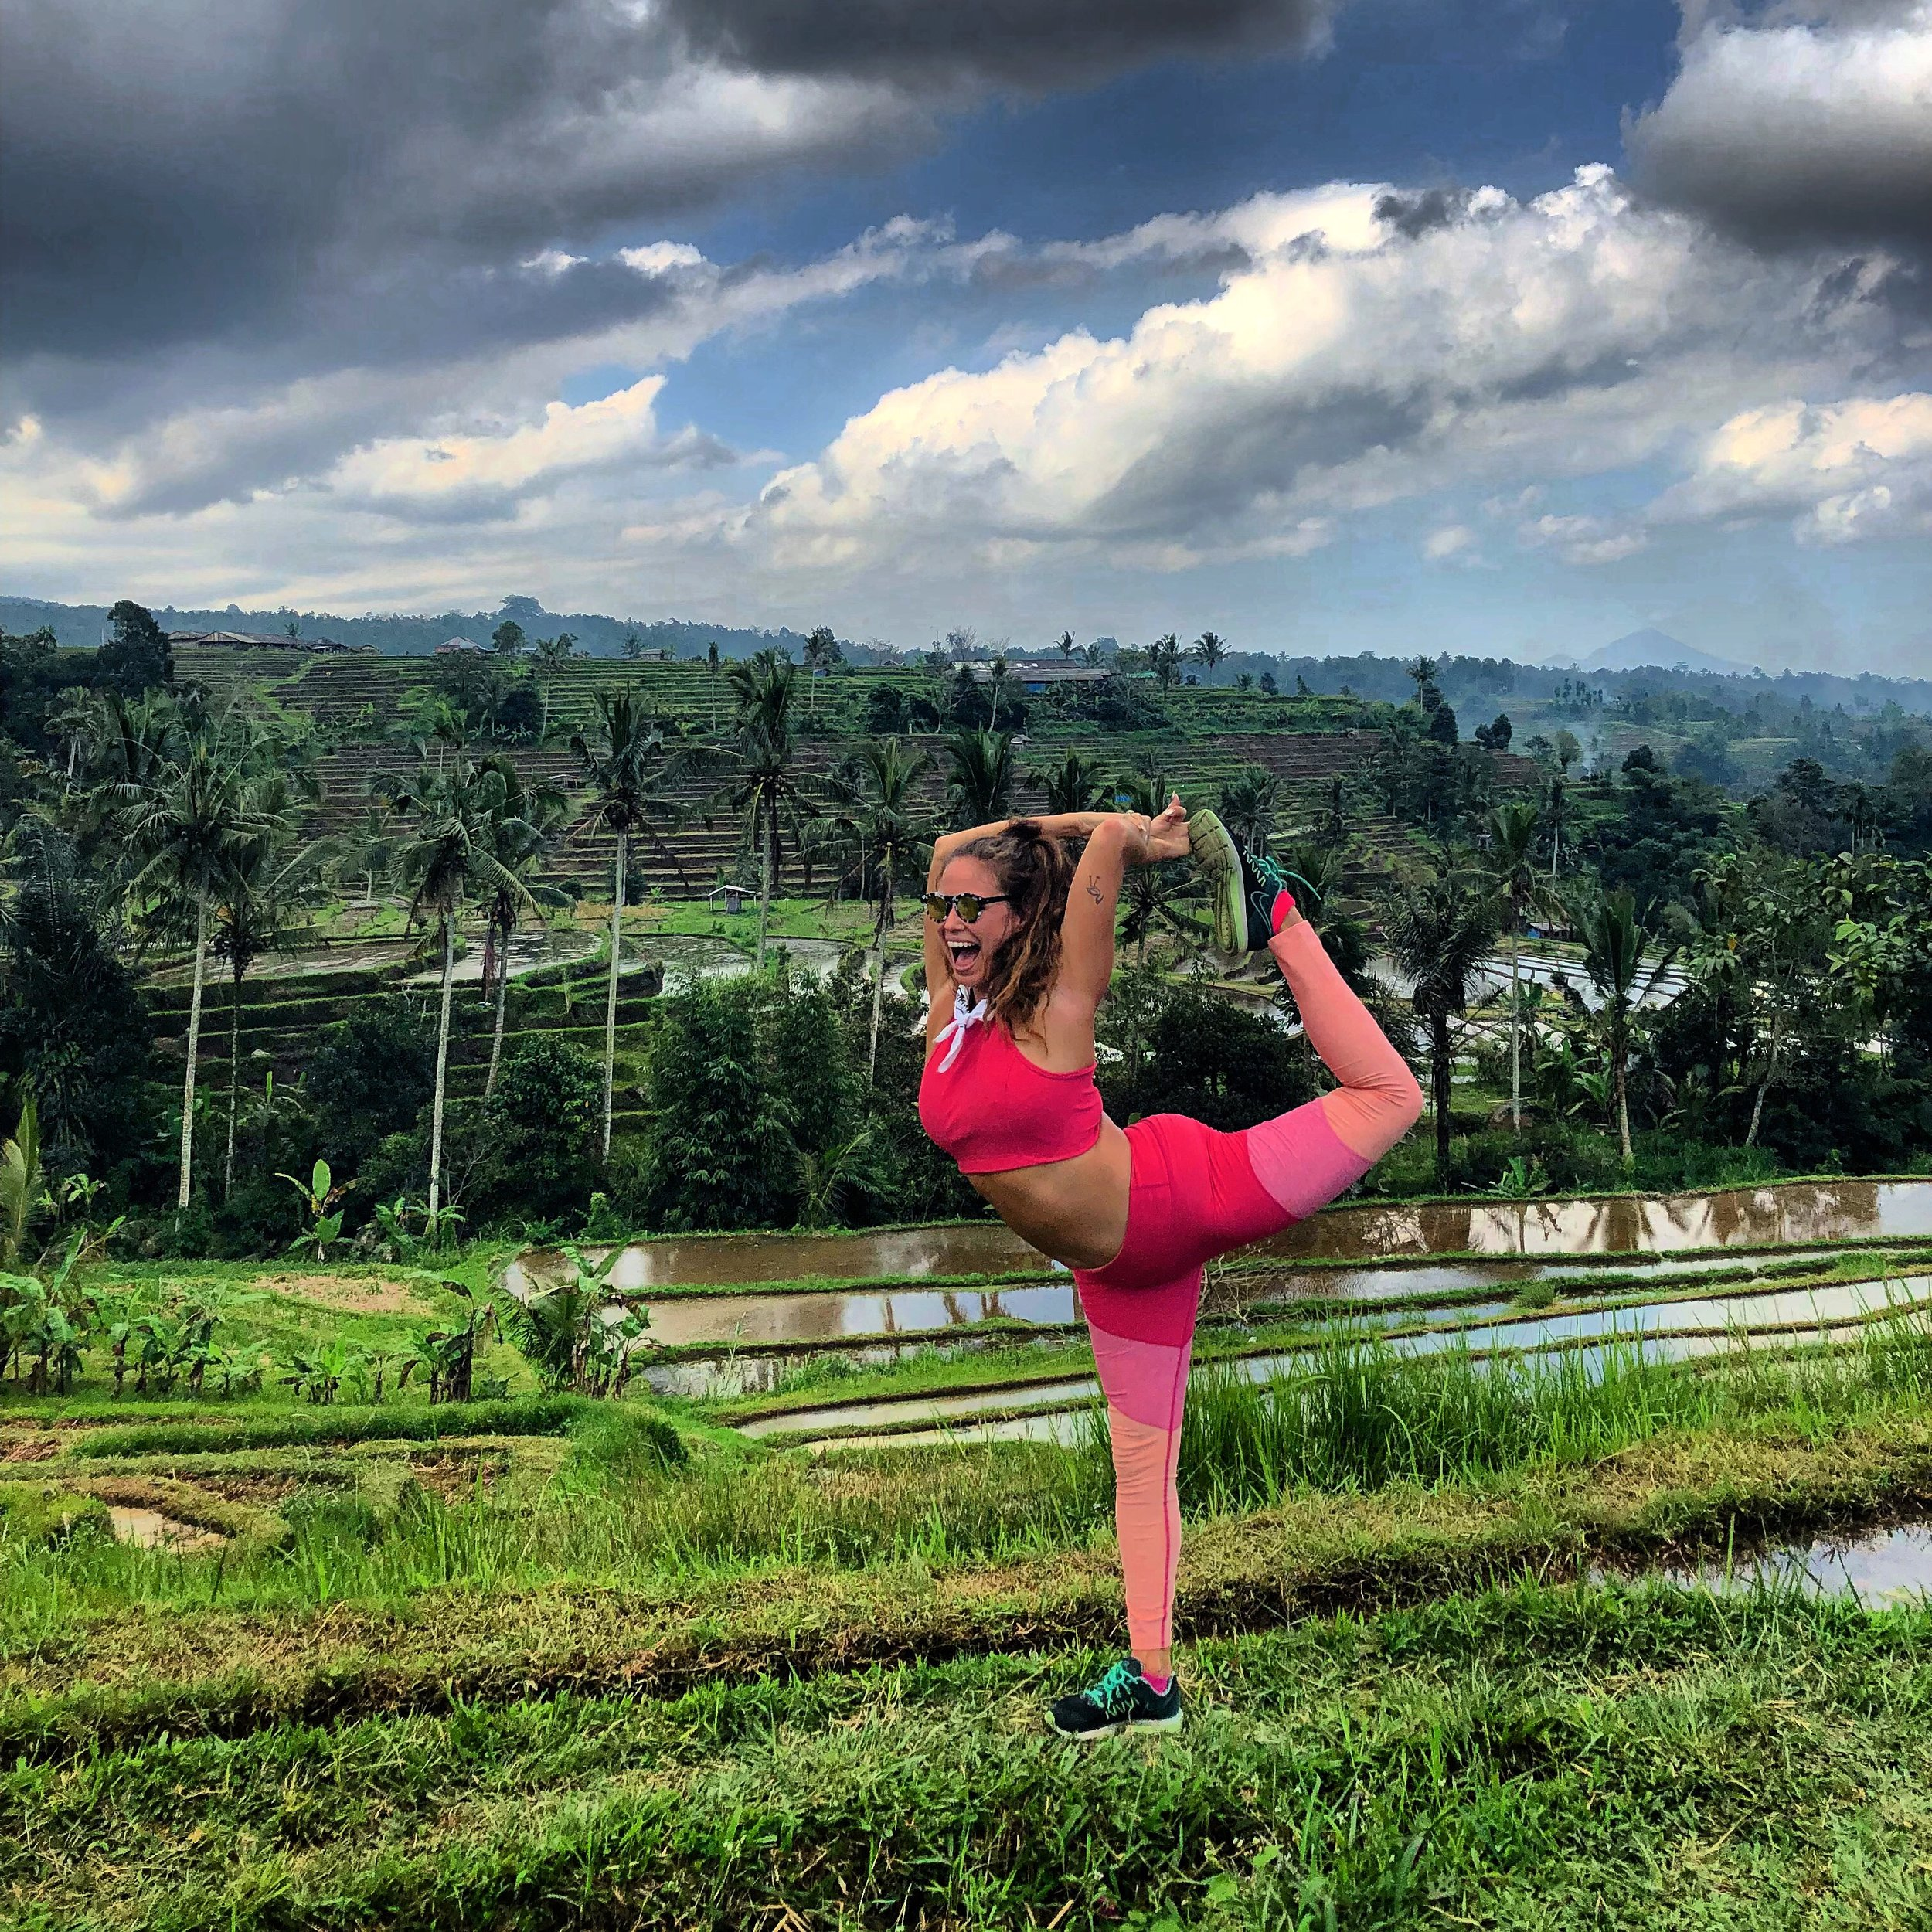 Kaitlyn Clement - A Texan by blood, Kaitlyn made New Orleans her home and became a part of the yoga community in 2016 after receiving her certification in Thailand.Her classes are as fun as they are unique. Every practice is a new flow. Once an intention has been set, she guides her students through pranayama techniques that weave into creative transitions throughout the asana, ending practice with a deep meditation. Her style includes Vinyasa, Yin, and a background in Ashtanga.Along with leading adults, Kaitlyn is in her third year with Project Peaceful Warriors, a local nonprofit that brings mindfulness and movement to New Orleans youth.Class Schedule:- Sunrise Yoga at City Park, Wednesdays 6:30am + Weekly NTY classes on a rotating basis. Follow Kaitlyn on Instagram here!